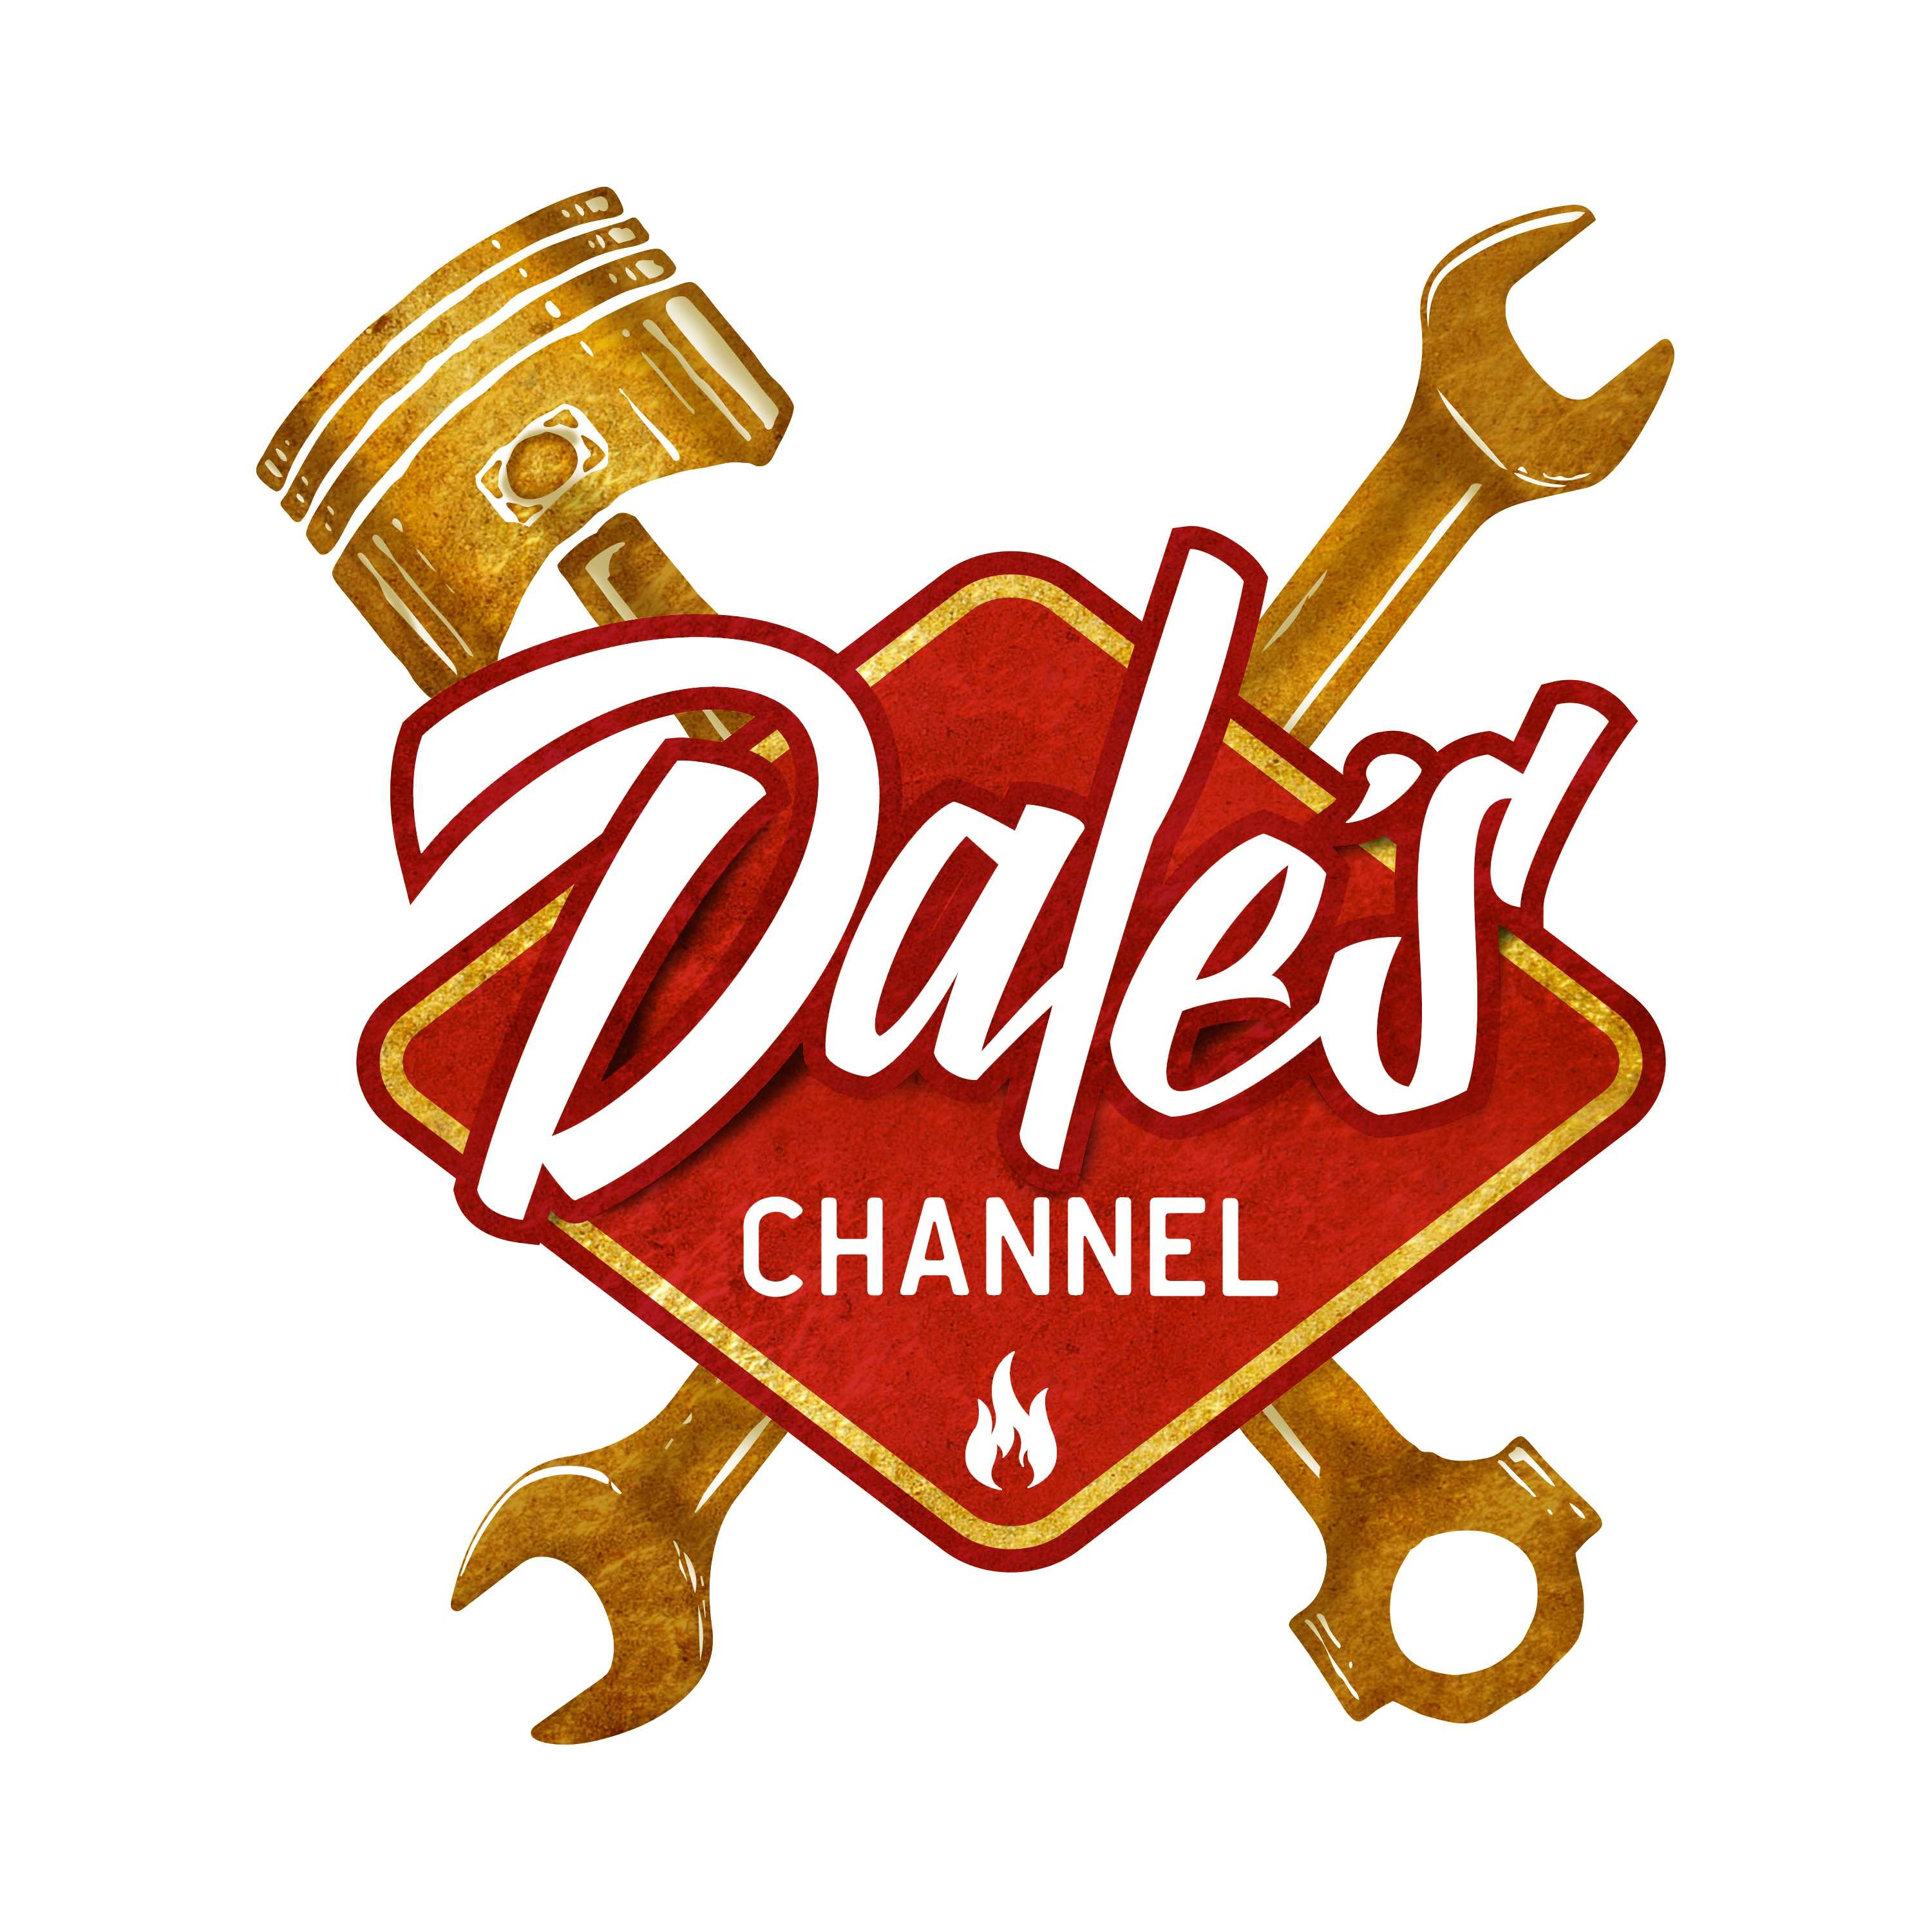 Dale's Channel Monthly Subscription